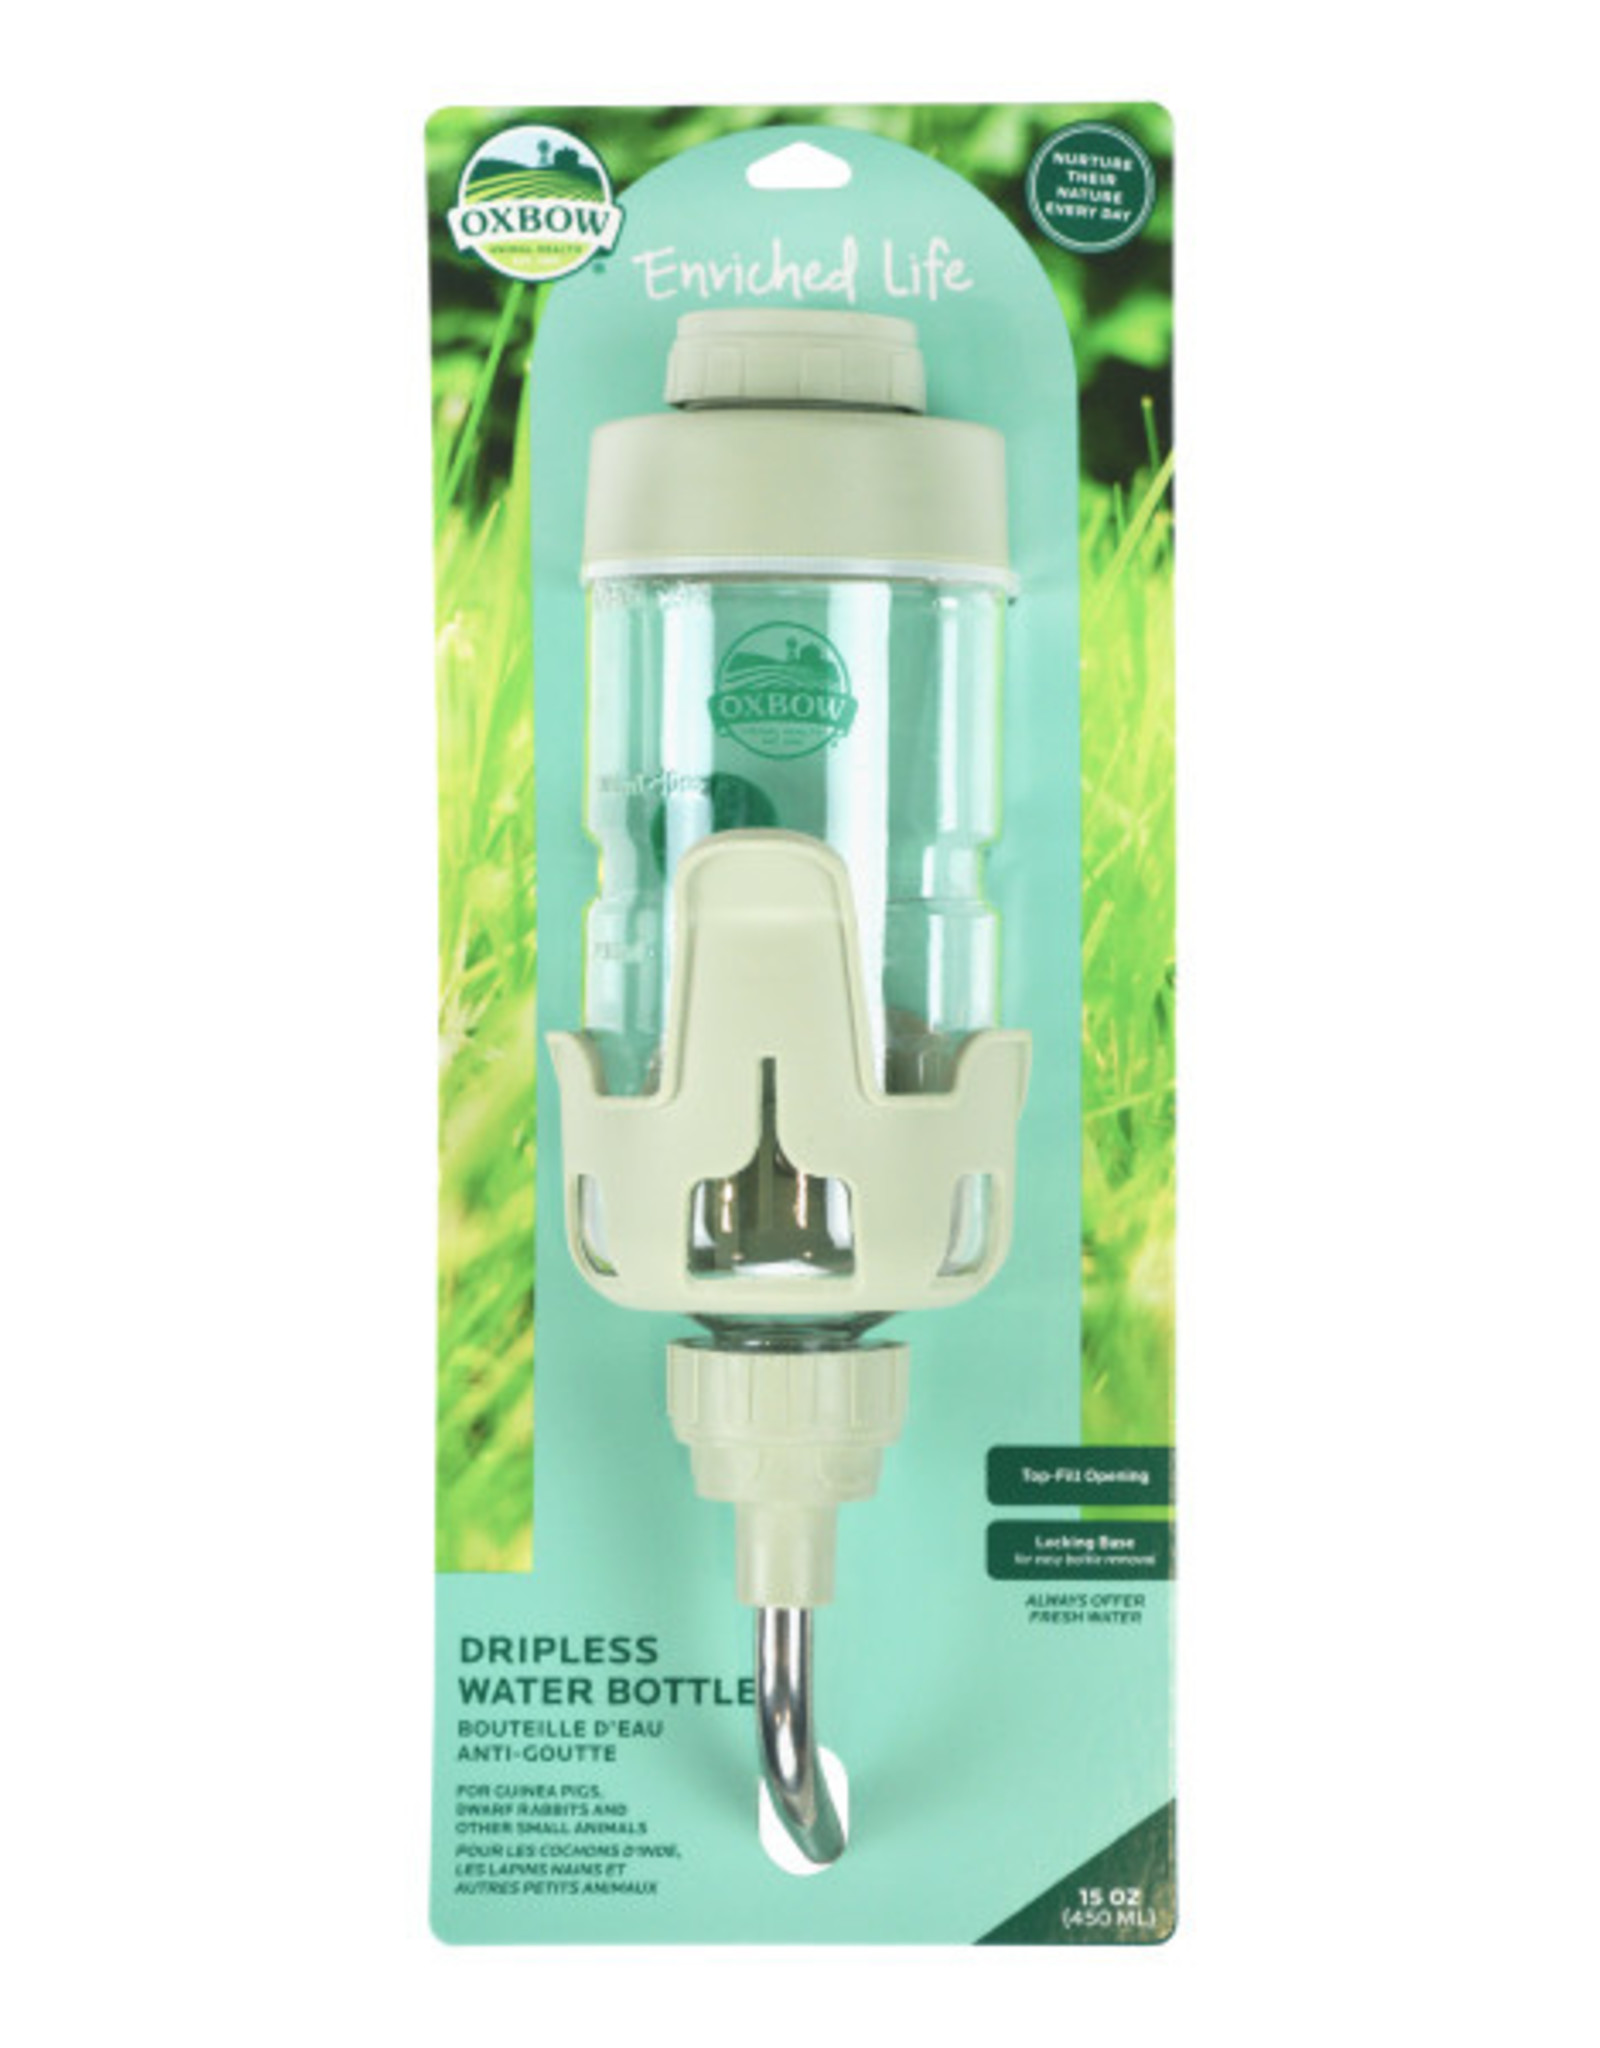 Oxbow Dripless Water Bottle - Small (15oz)